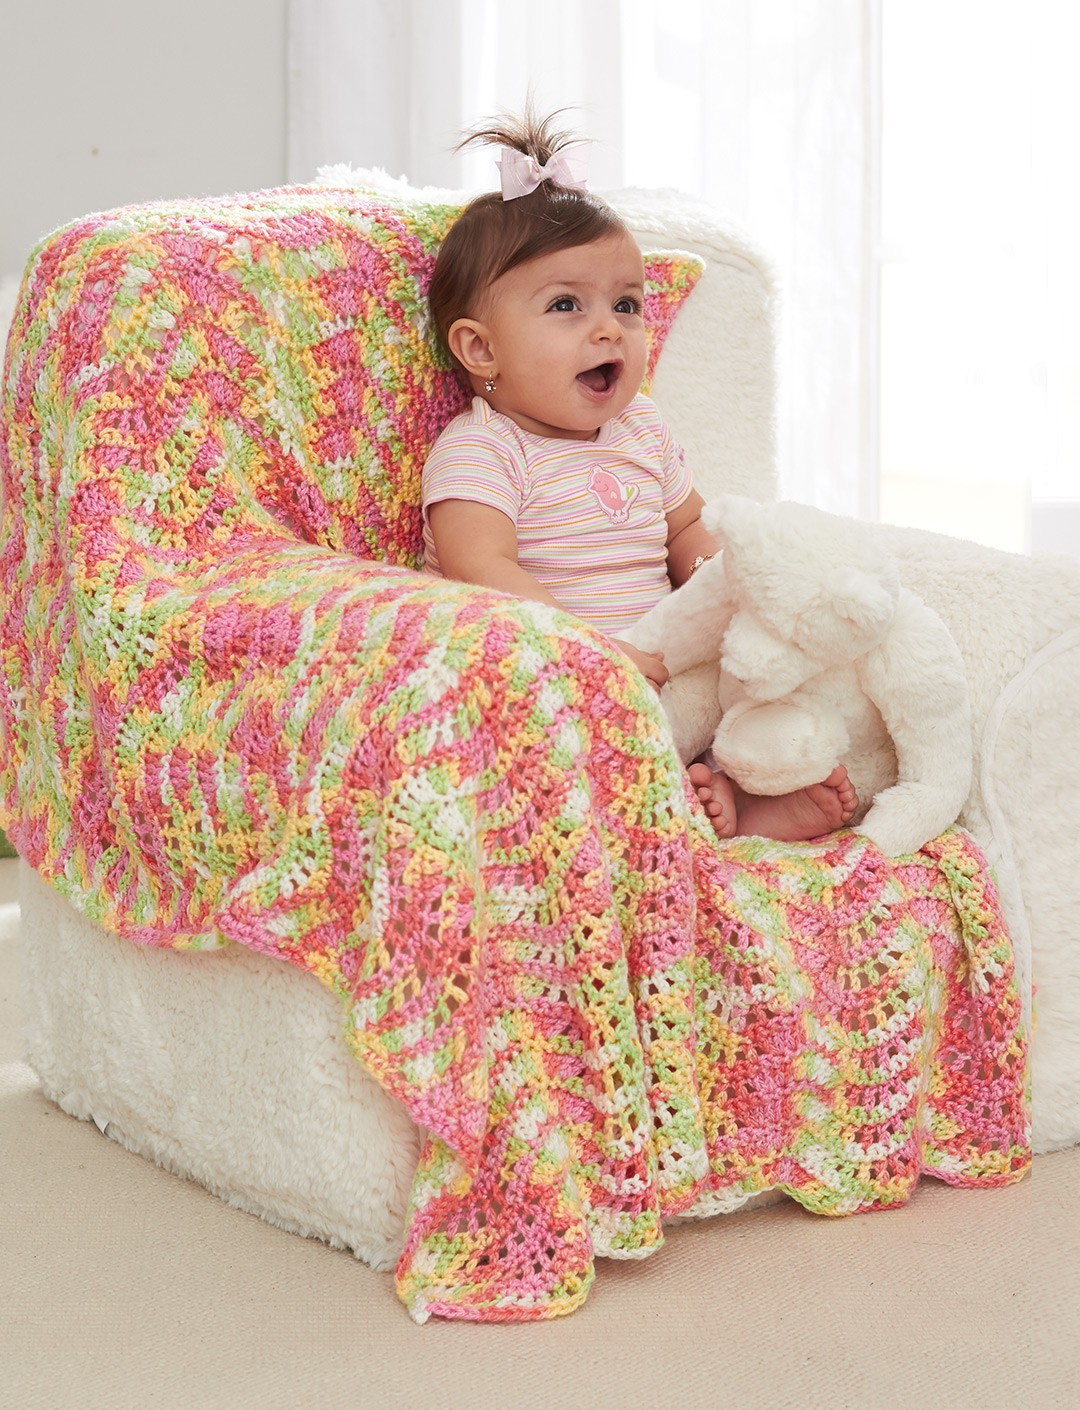 Caron Crochet Baby Blanket Pattern : Caron Baby Waves Blanket, Crochet Pattern Yarnspirations